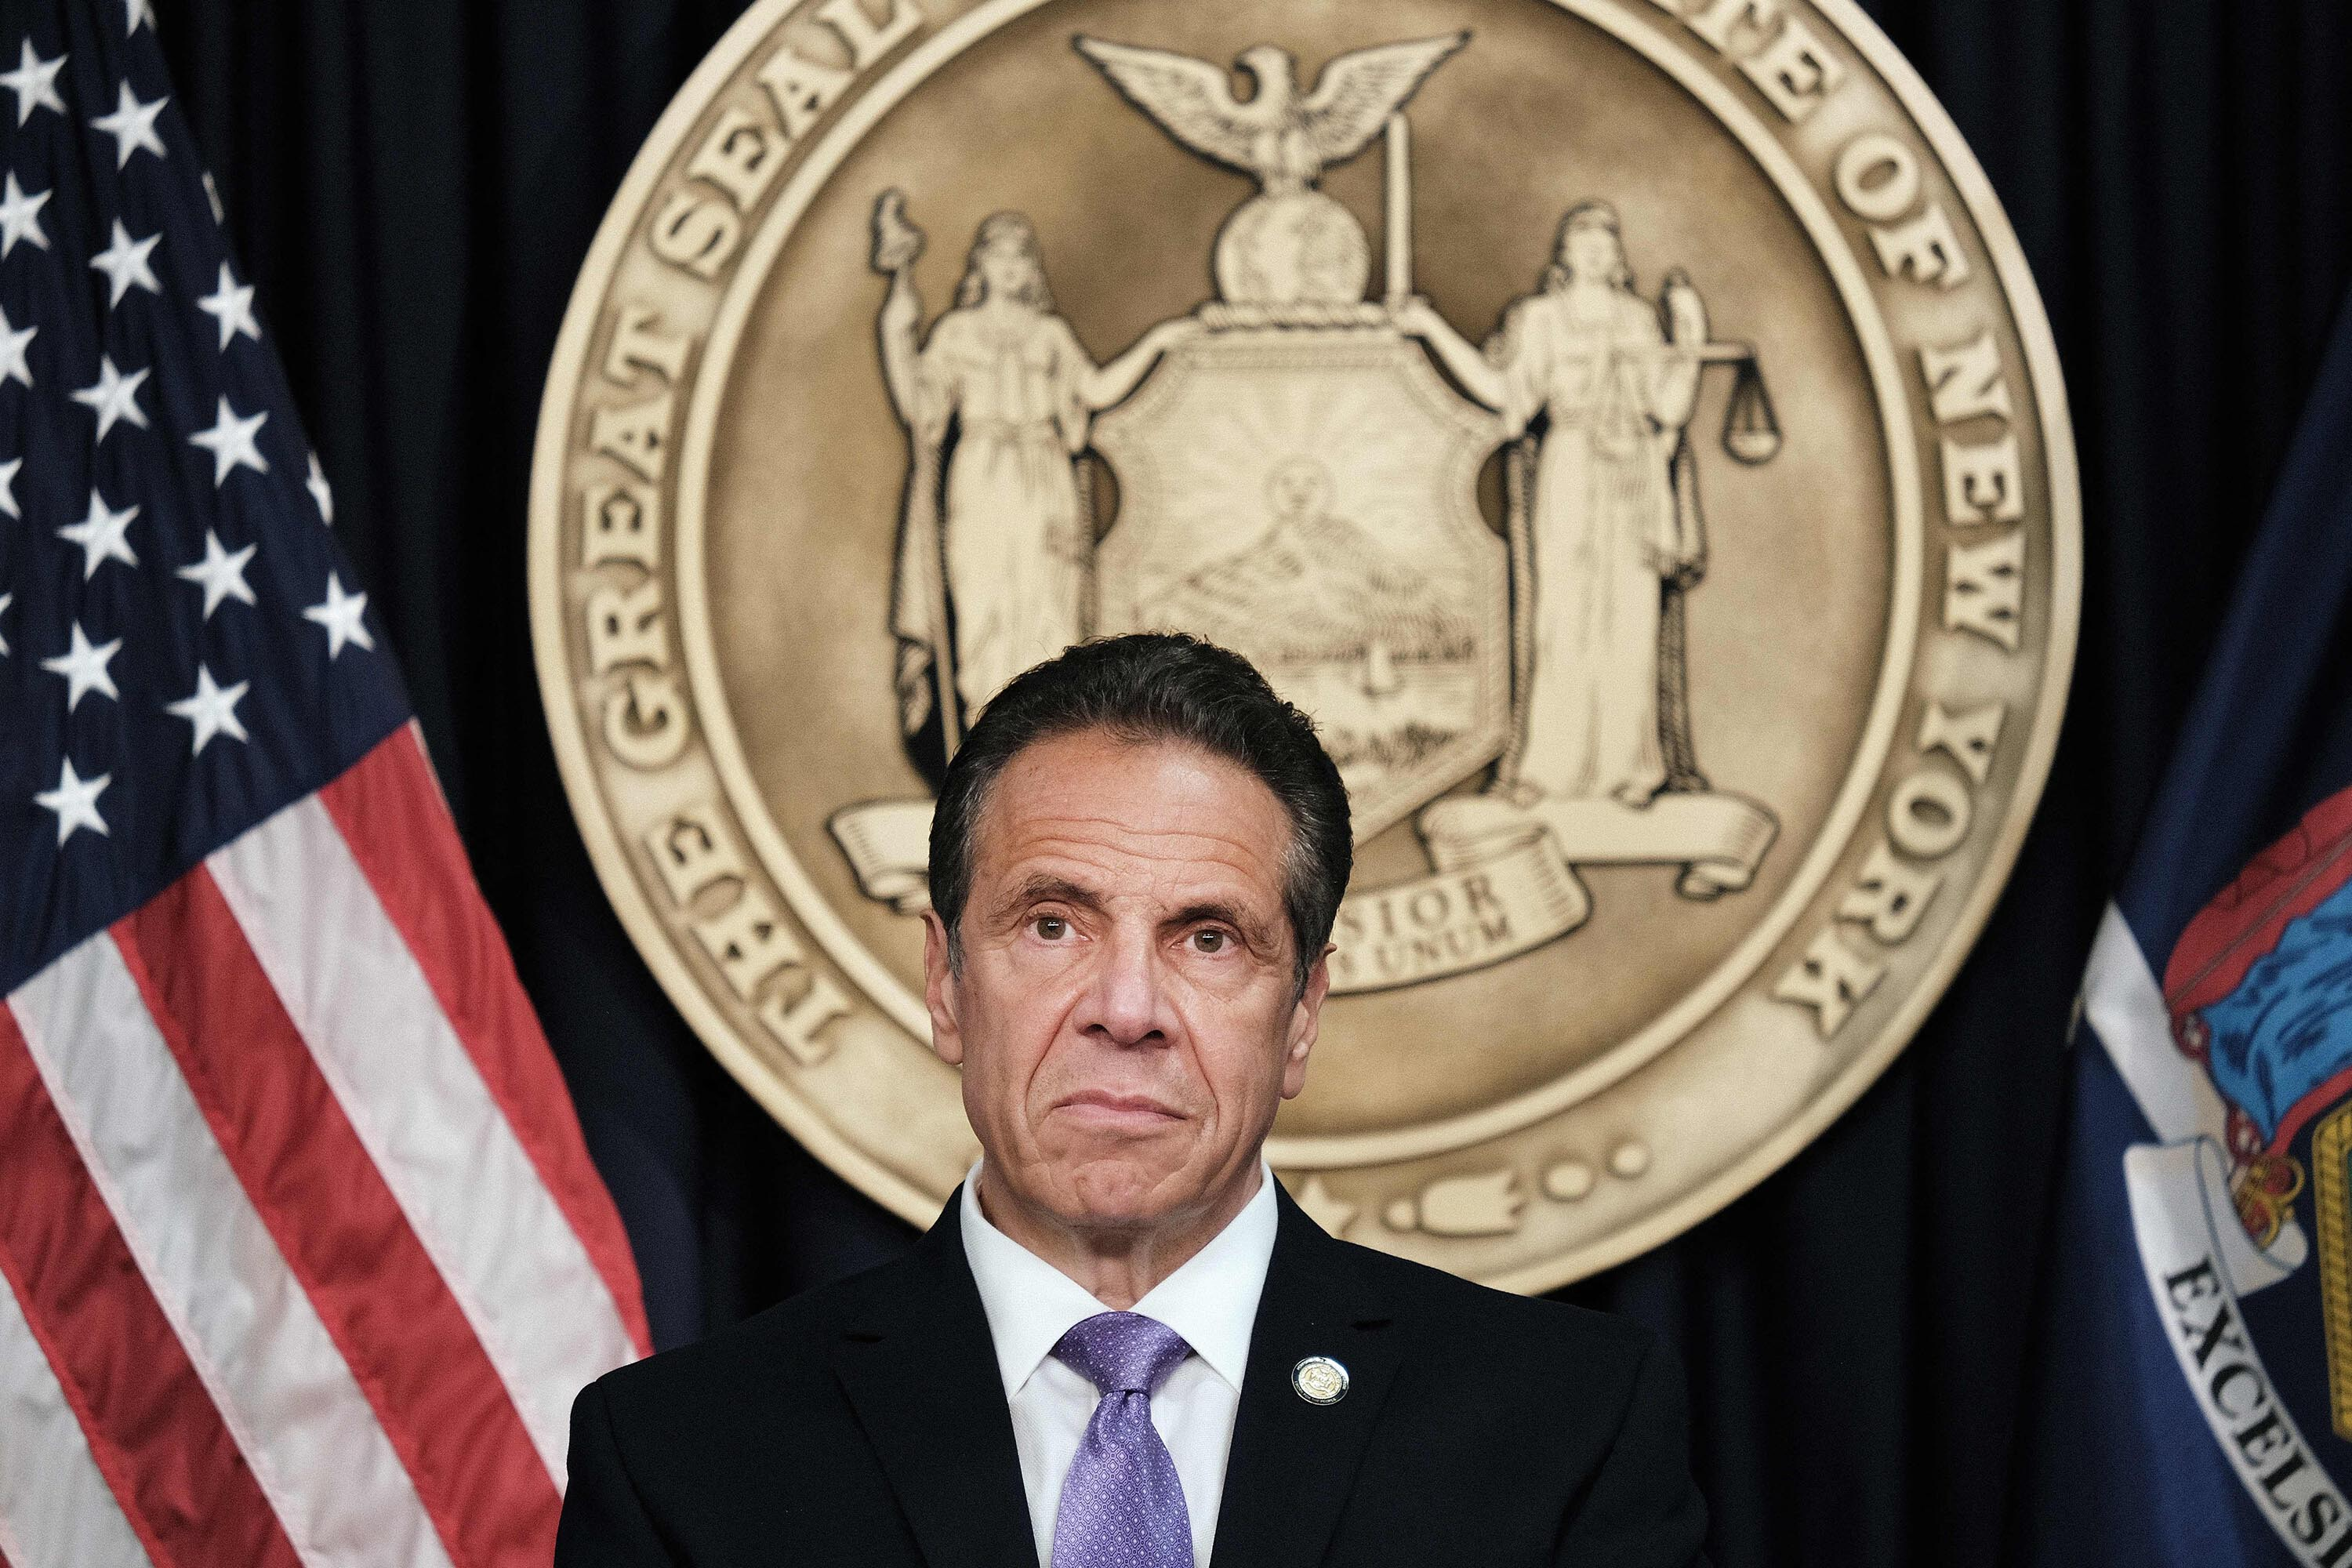 Cuomo faces calls for resignation from powerful Democrats in wake of AG report